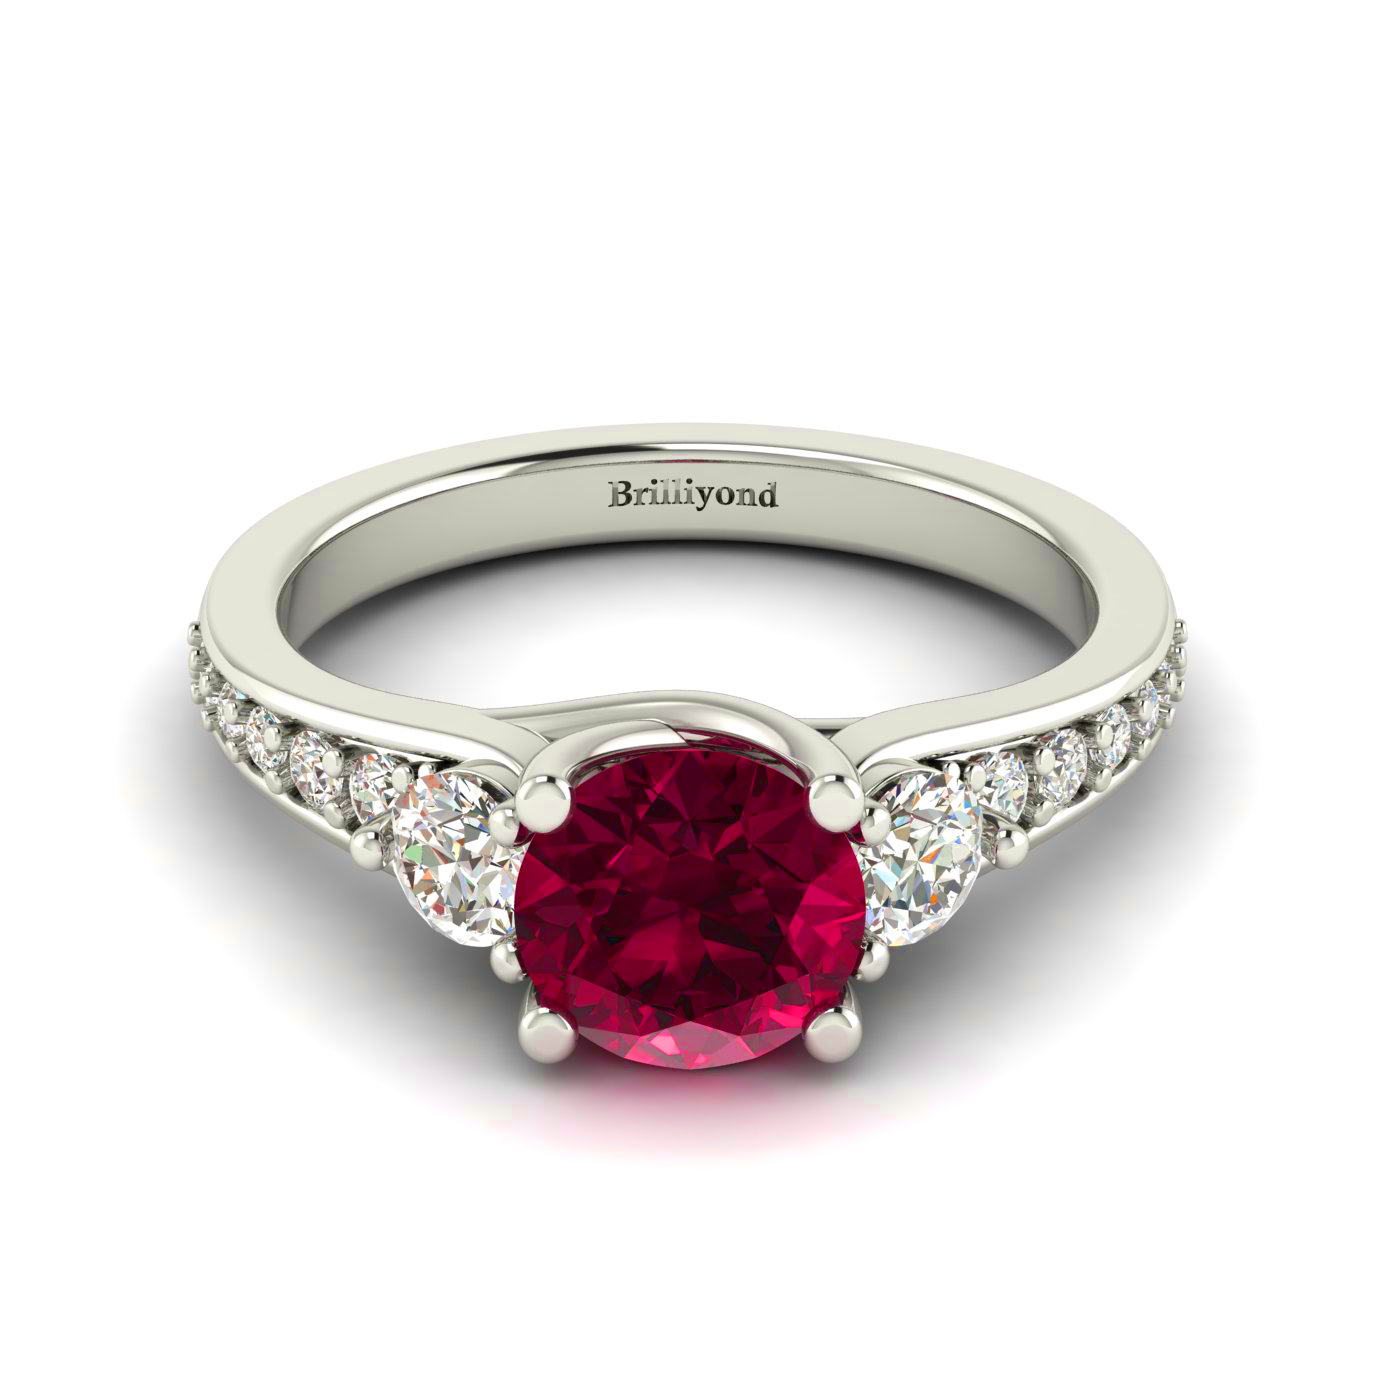 6mm Ruby with Conflict-free Diamonds on 18k White Gold